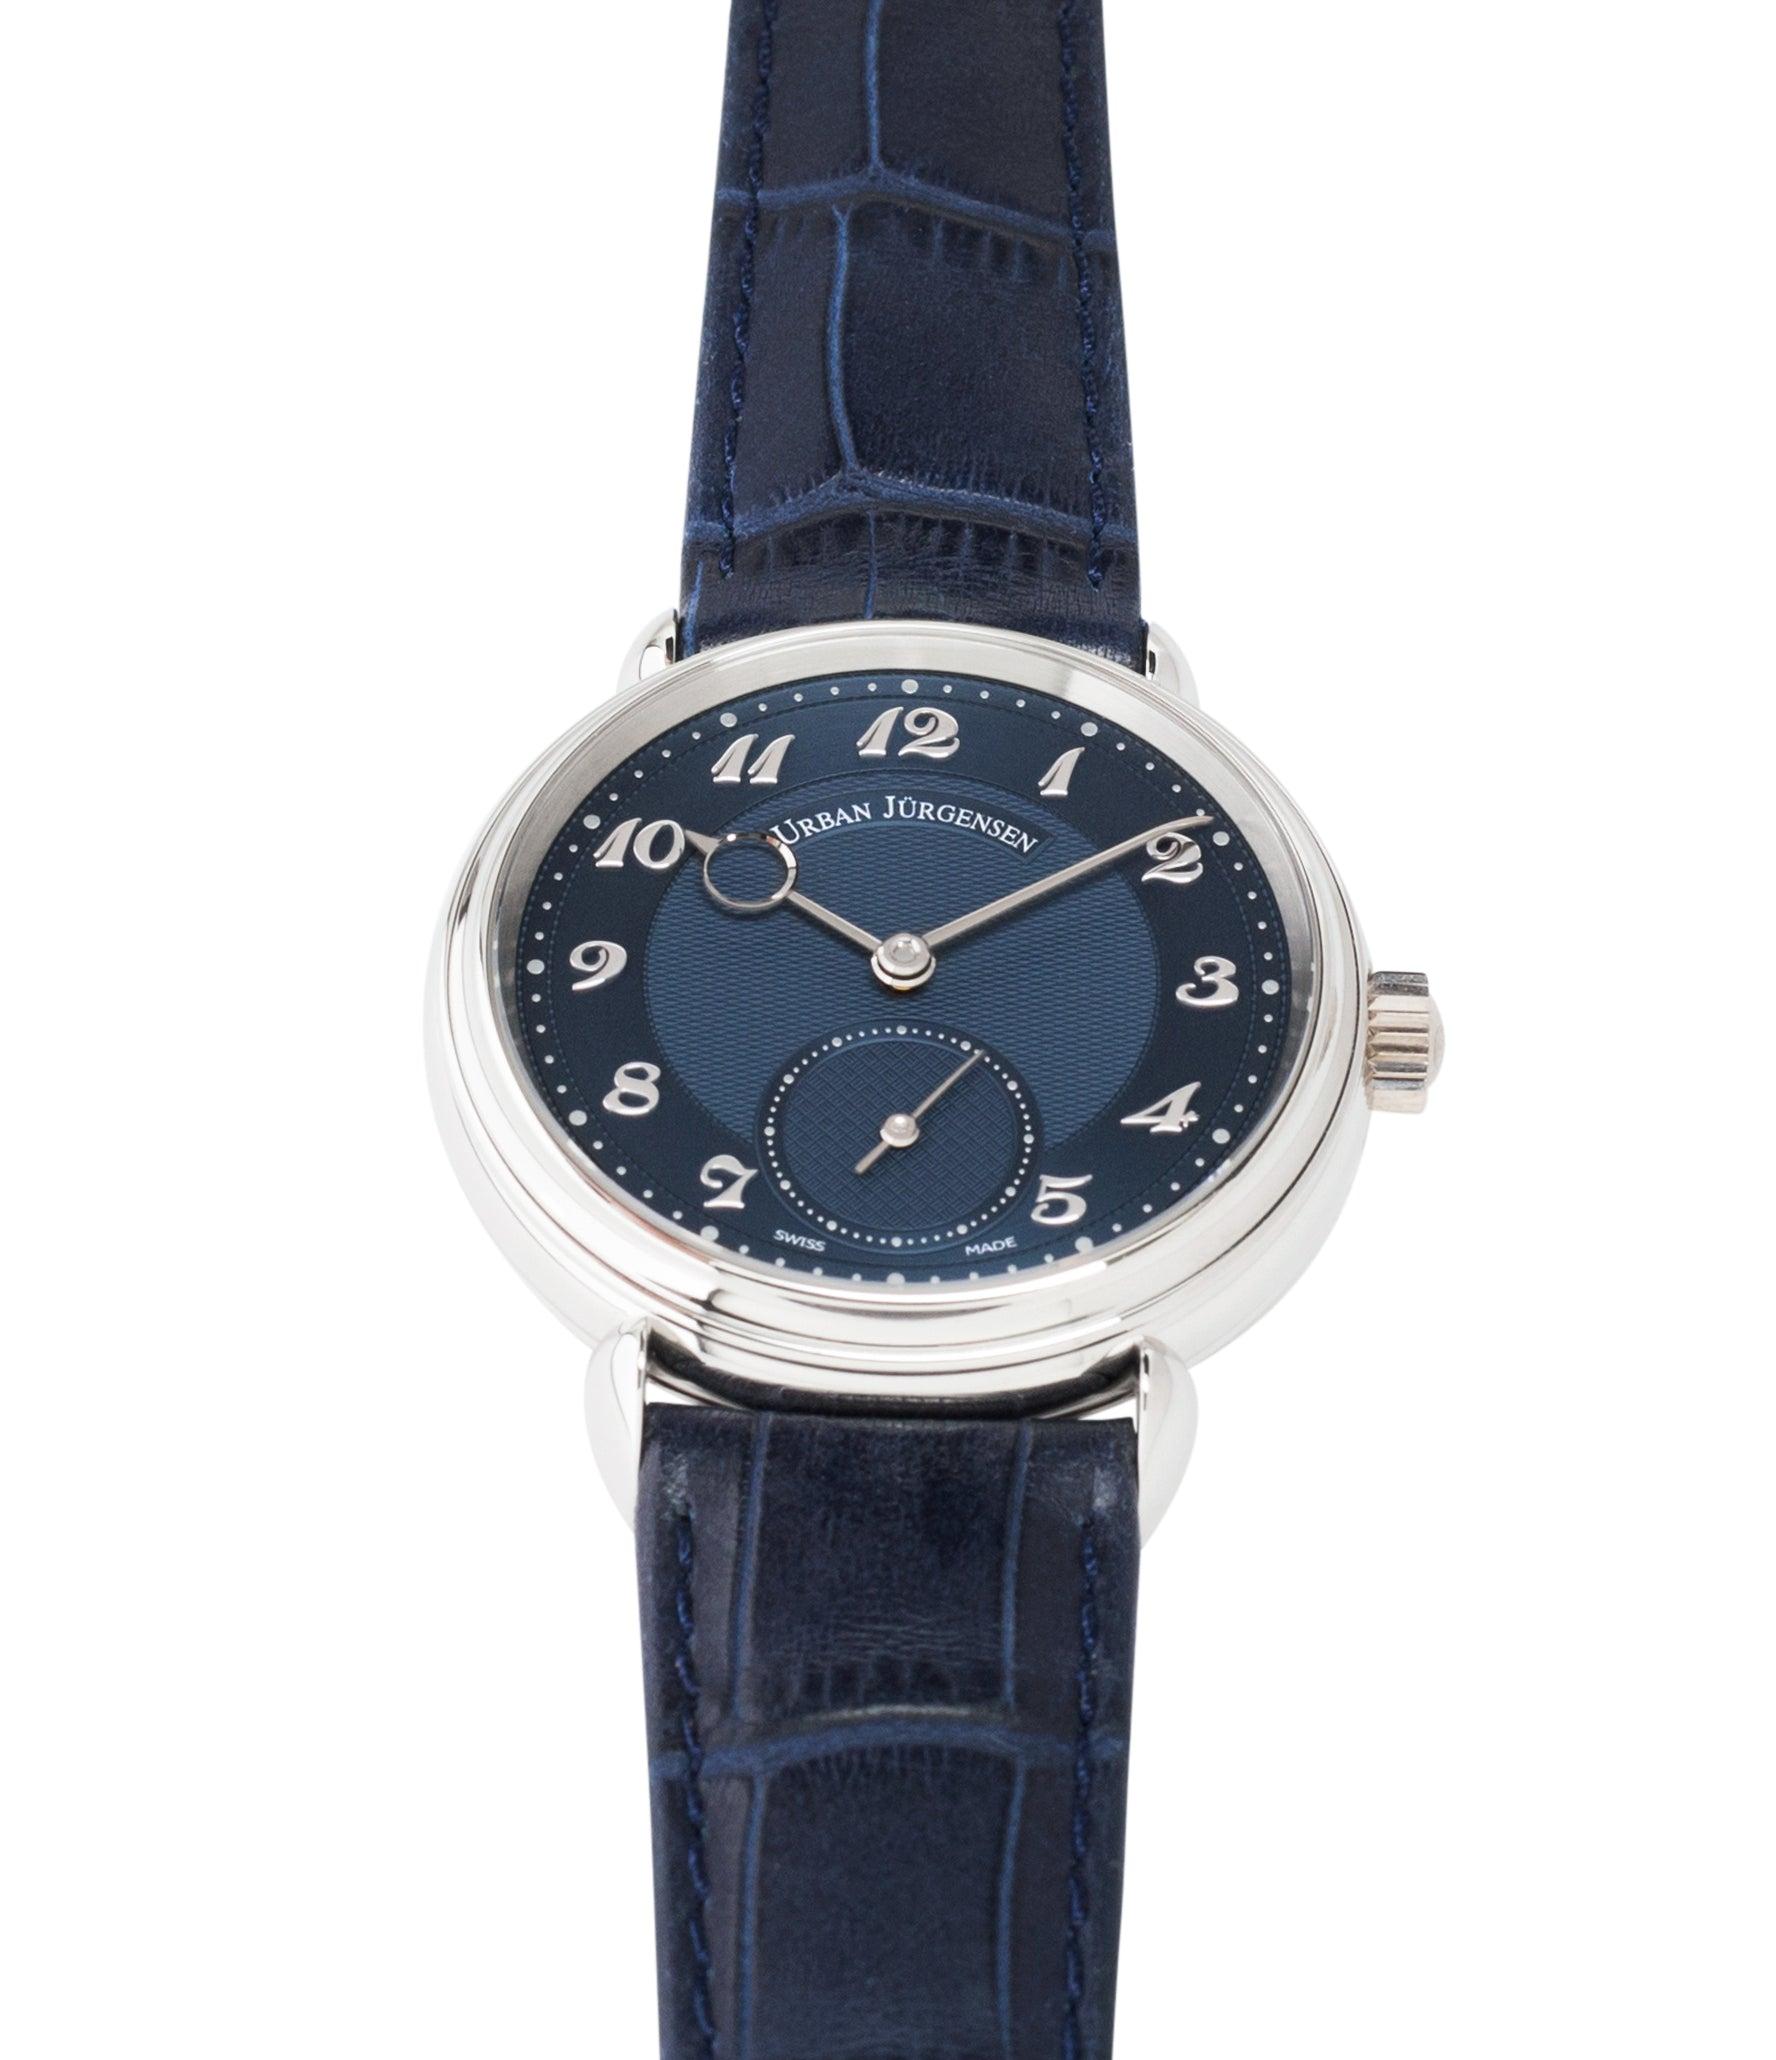 1140 Urban Jurgensen platinum Blue dial watch online at A Collected Man London independent watchmaker specialist authorised retailer in the UK